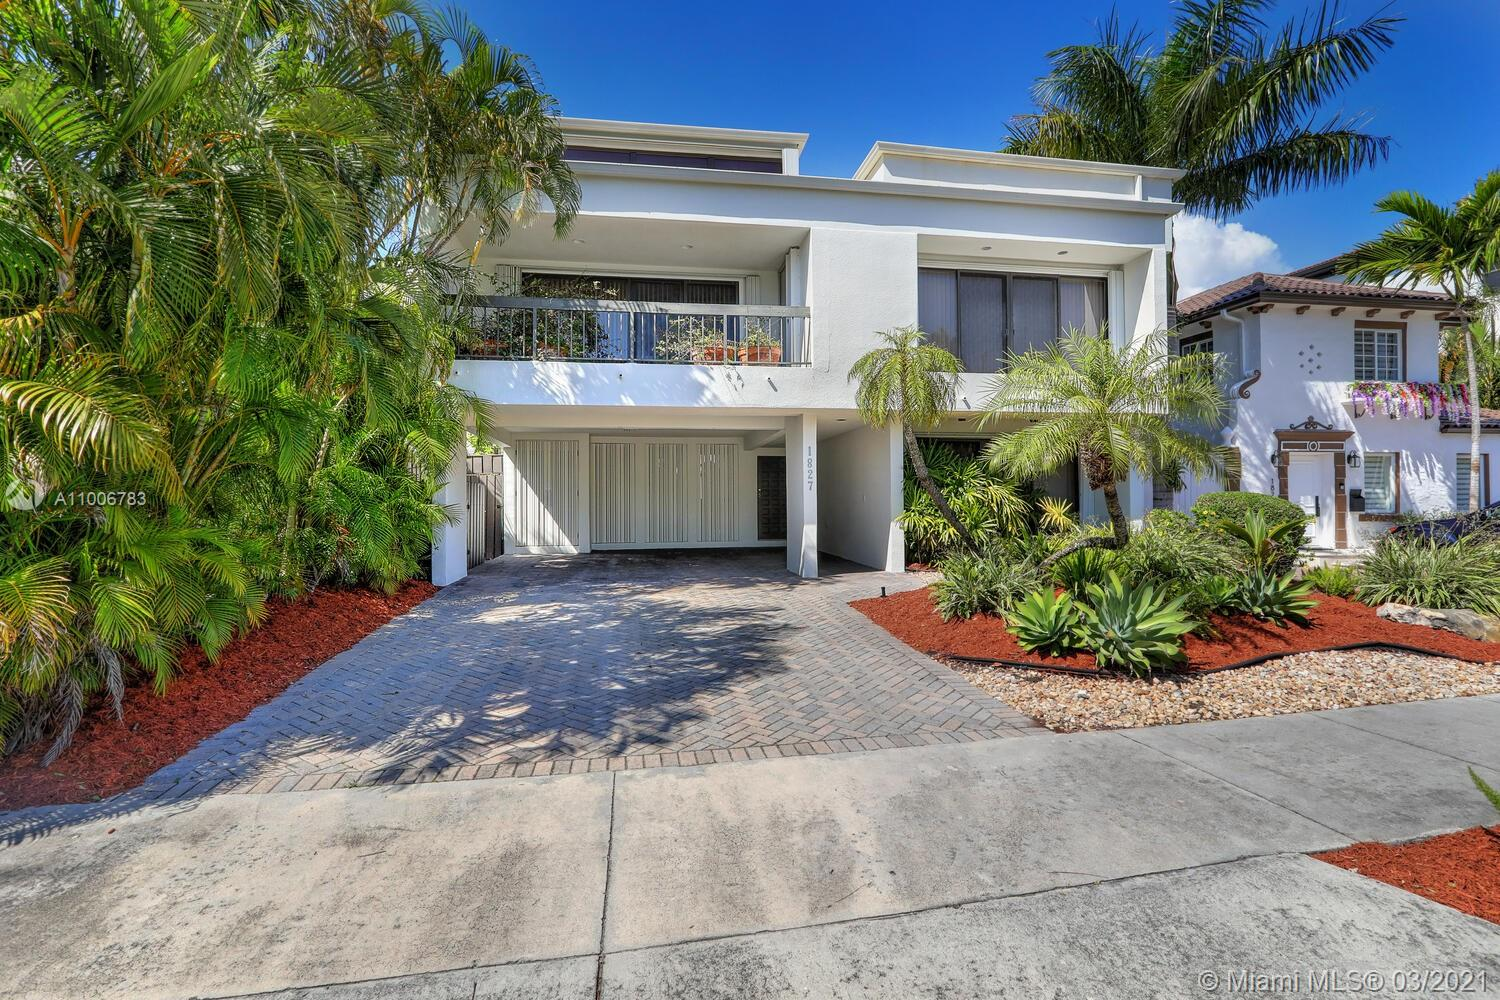 Unique, contemporary two-story home in a quiet & secure North Coconut Grove neighborhood. Walk or bike to bayfront parks, marinas & the Grove village's galleries, boutiques & cafes. Light-filled living room features double-height, wood-beamed ceilings & expansive wall space for displaying art collections. Recent professional designer renovations include: custom kitchen with Bosch & built-in Sub-Zero appliances + striking backlit-blown glass backsplash. Additional renovations include: custom elevator, custom lighting, 2 new HVAC systems, all electrical & plumbing and new bathrooms with custom-designed frosted glass windows, marble countertops & custom cabinetry. Oversized, ultra-private courtyard pool centers the outdoor living area. Minutes to downtown, MIA, Key Biscayne & the Beaches.